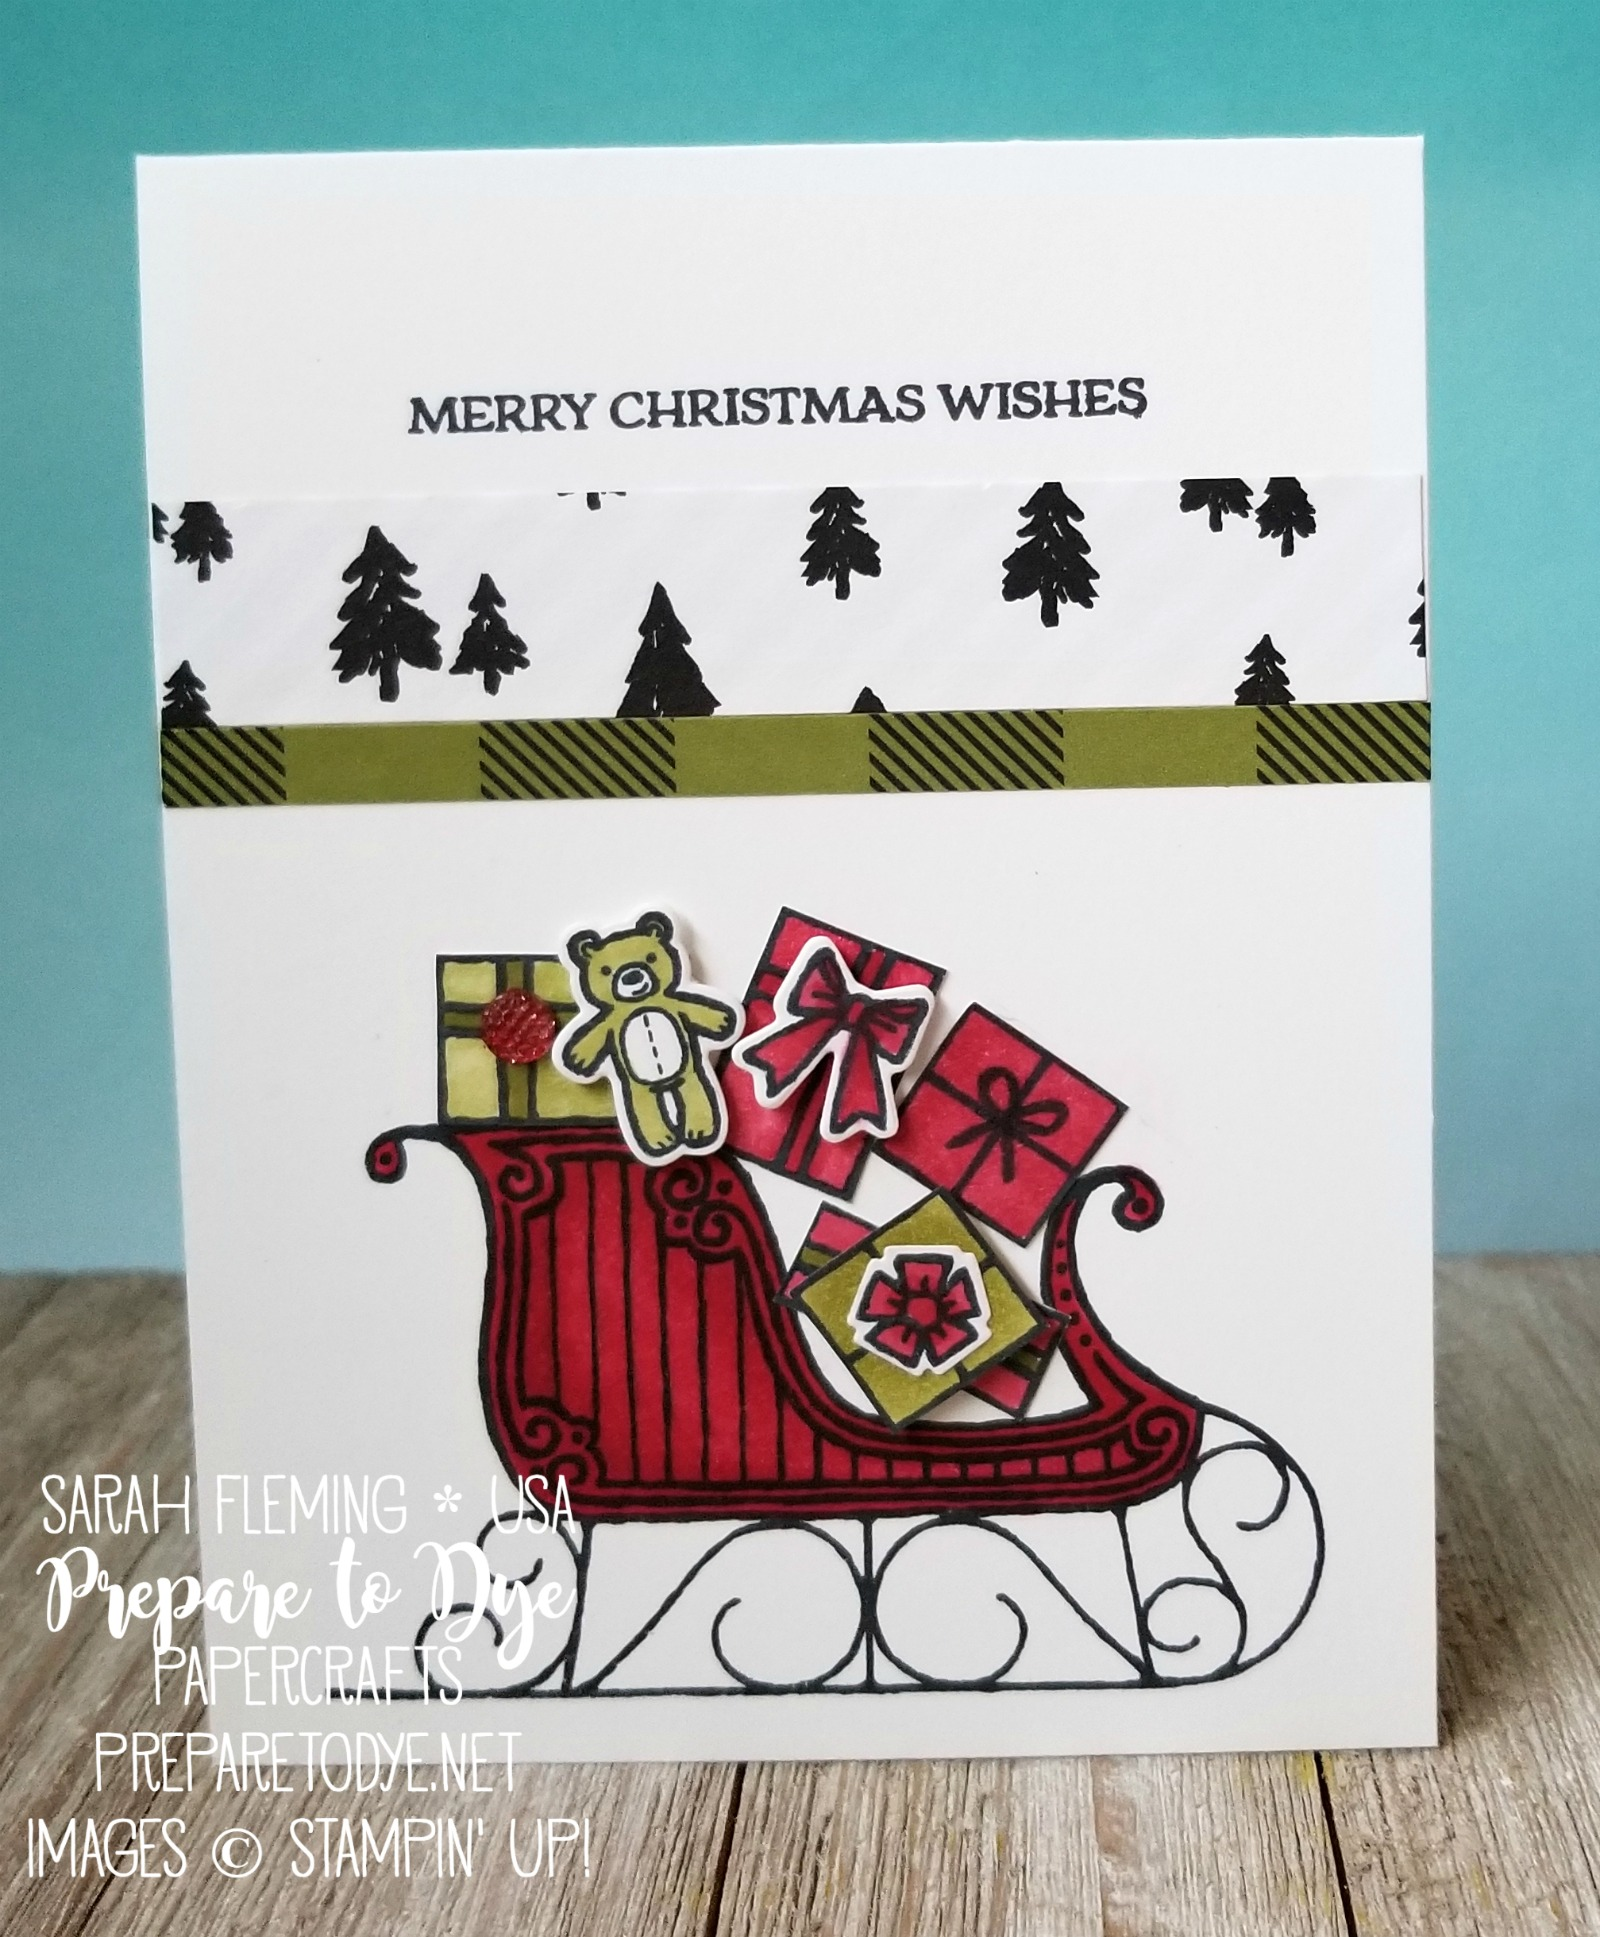 Stampin' Blends Marker Club November projects - Santa's Sleigh stamps, Santa's Sleigh thinlits, Merry Little Christmas paper - Sarah Fleming - Prepare to Dye Papercrafts